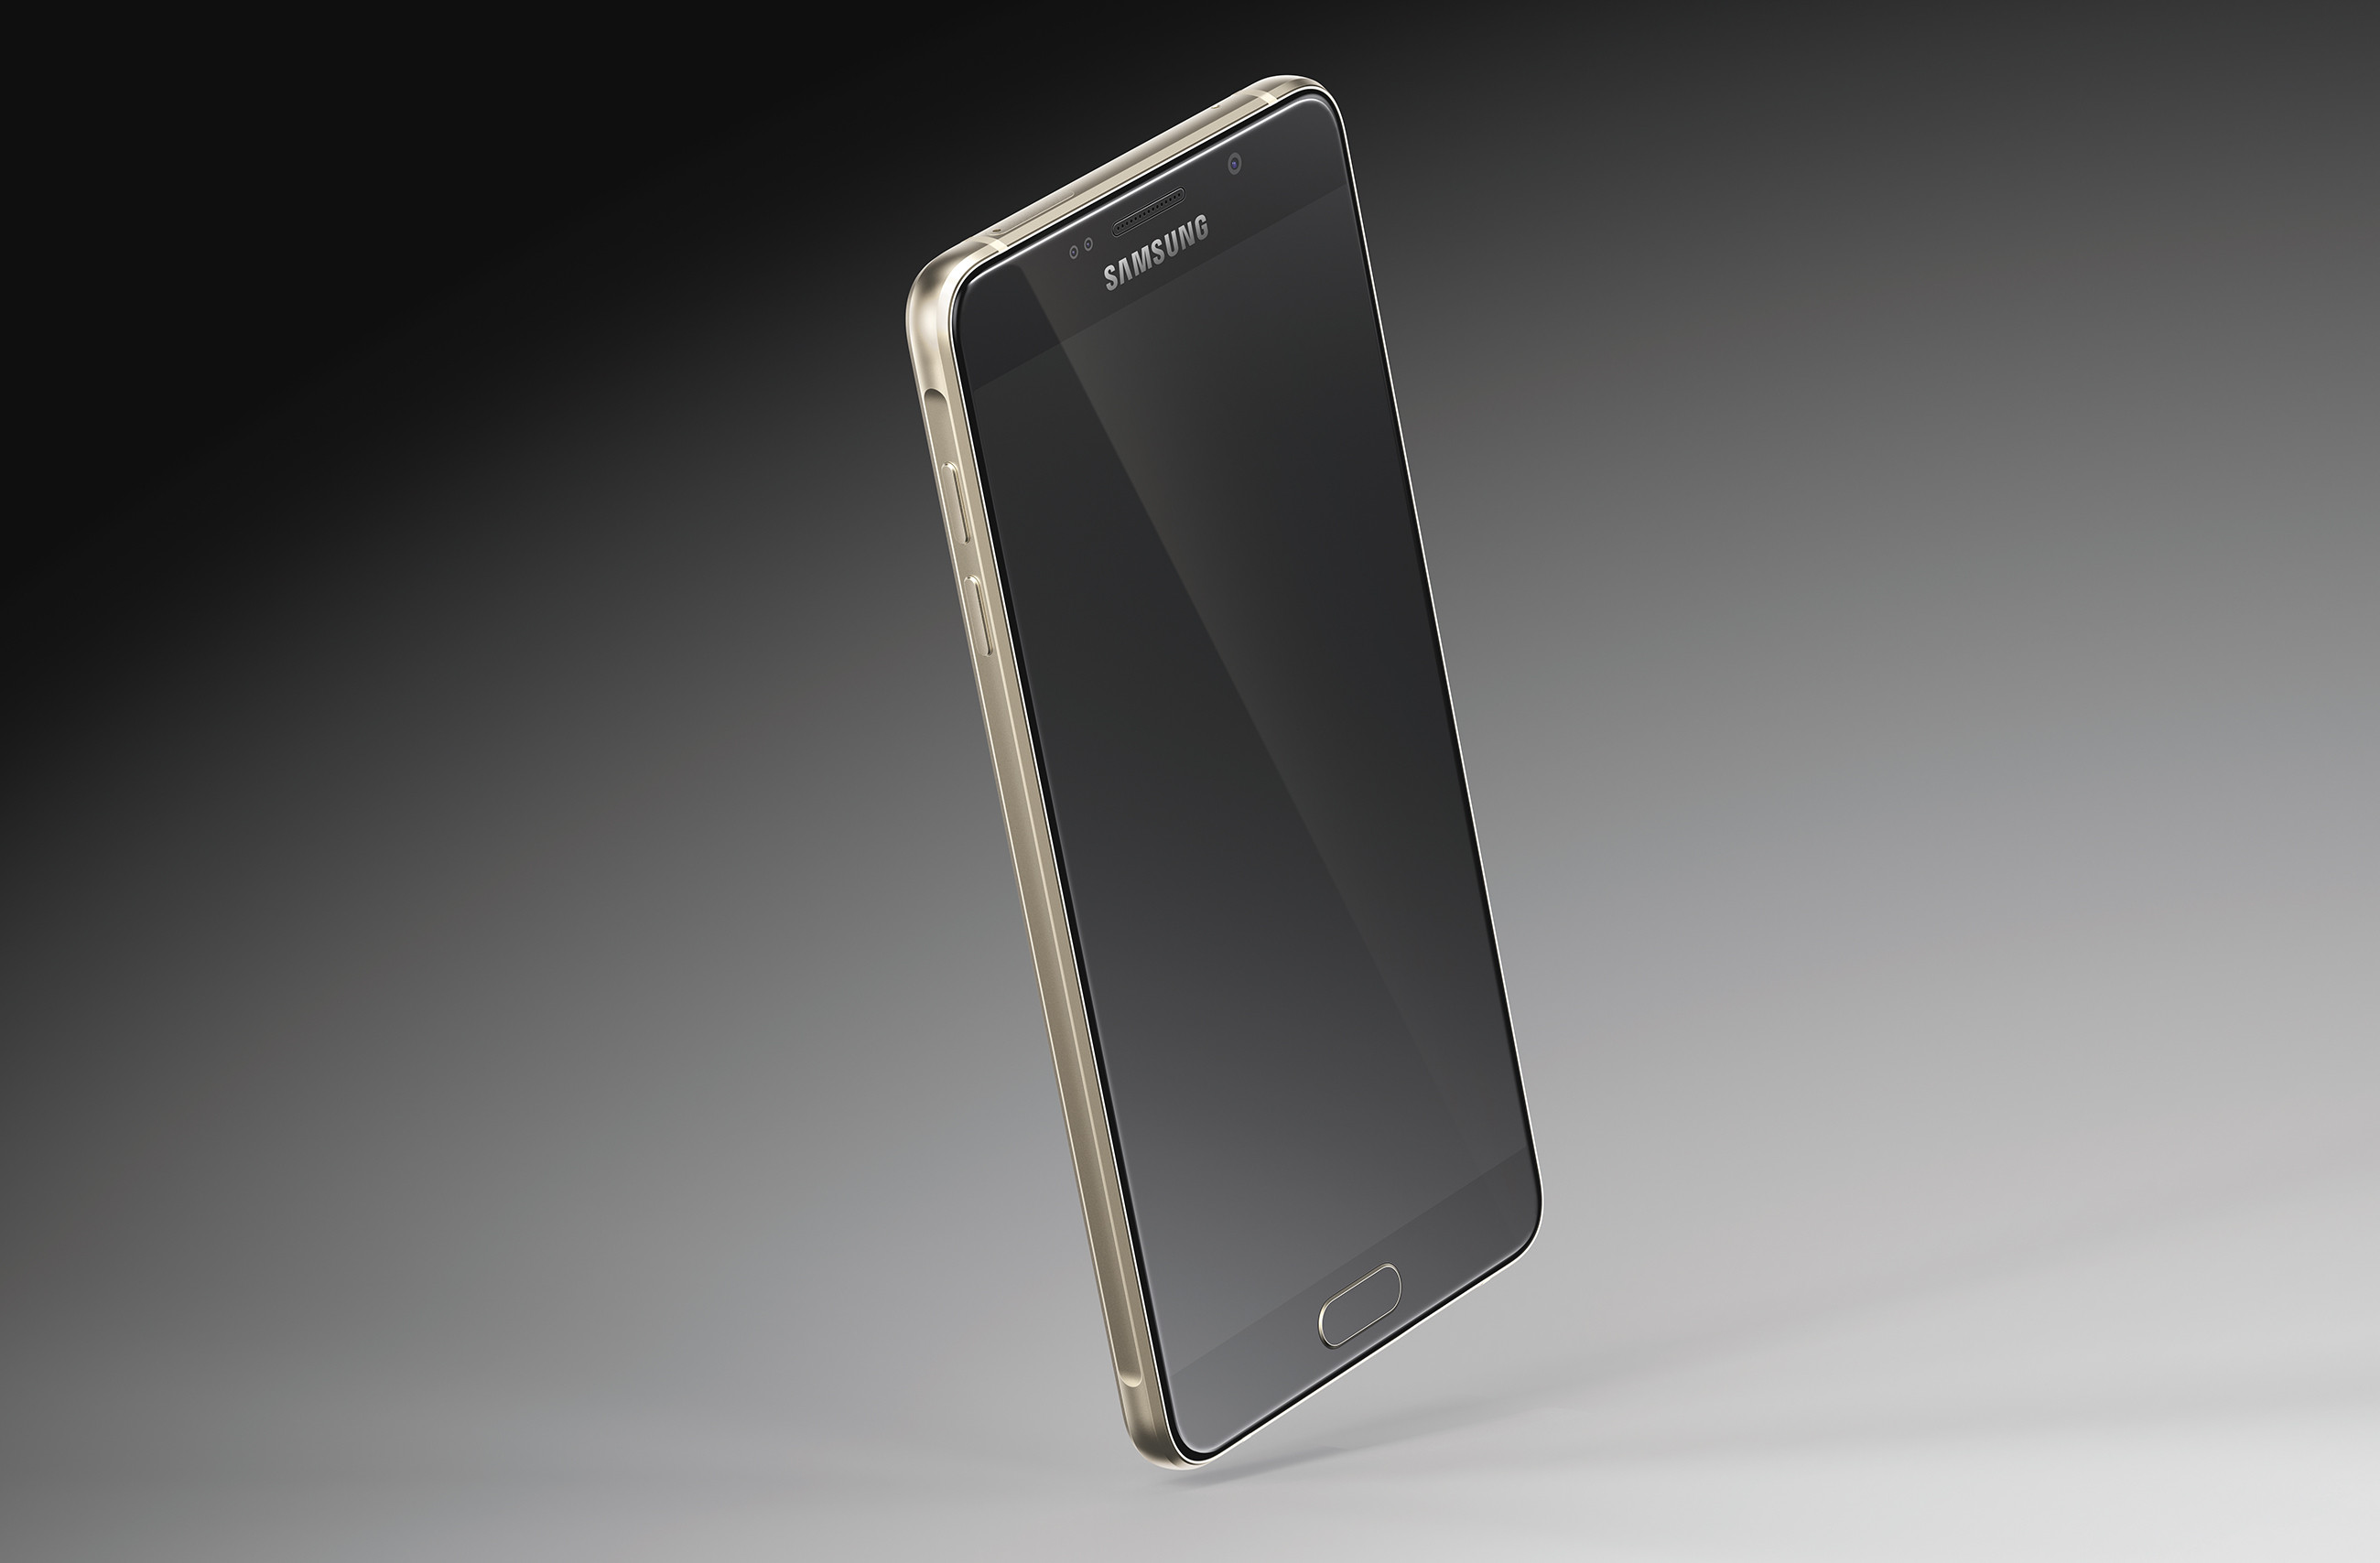 Samsung's Galaxy S7 Edge will reportedly have a monstrous battery